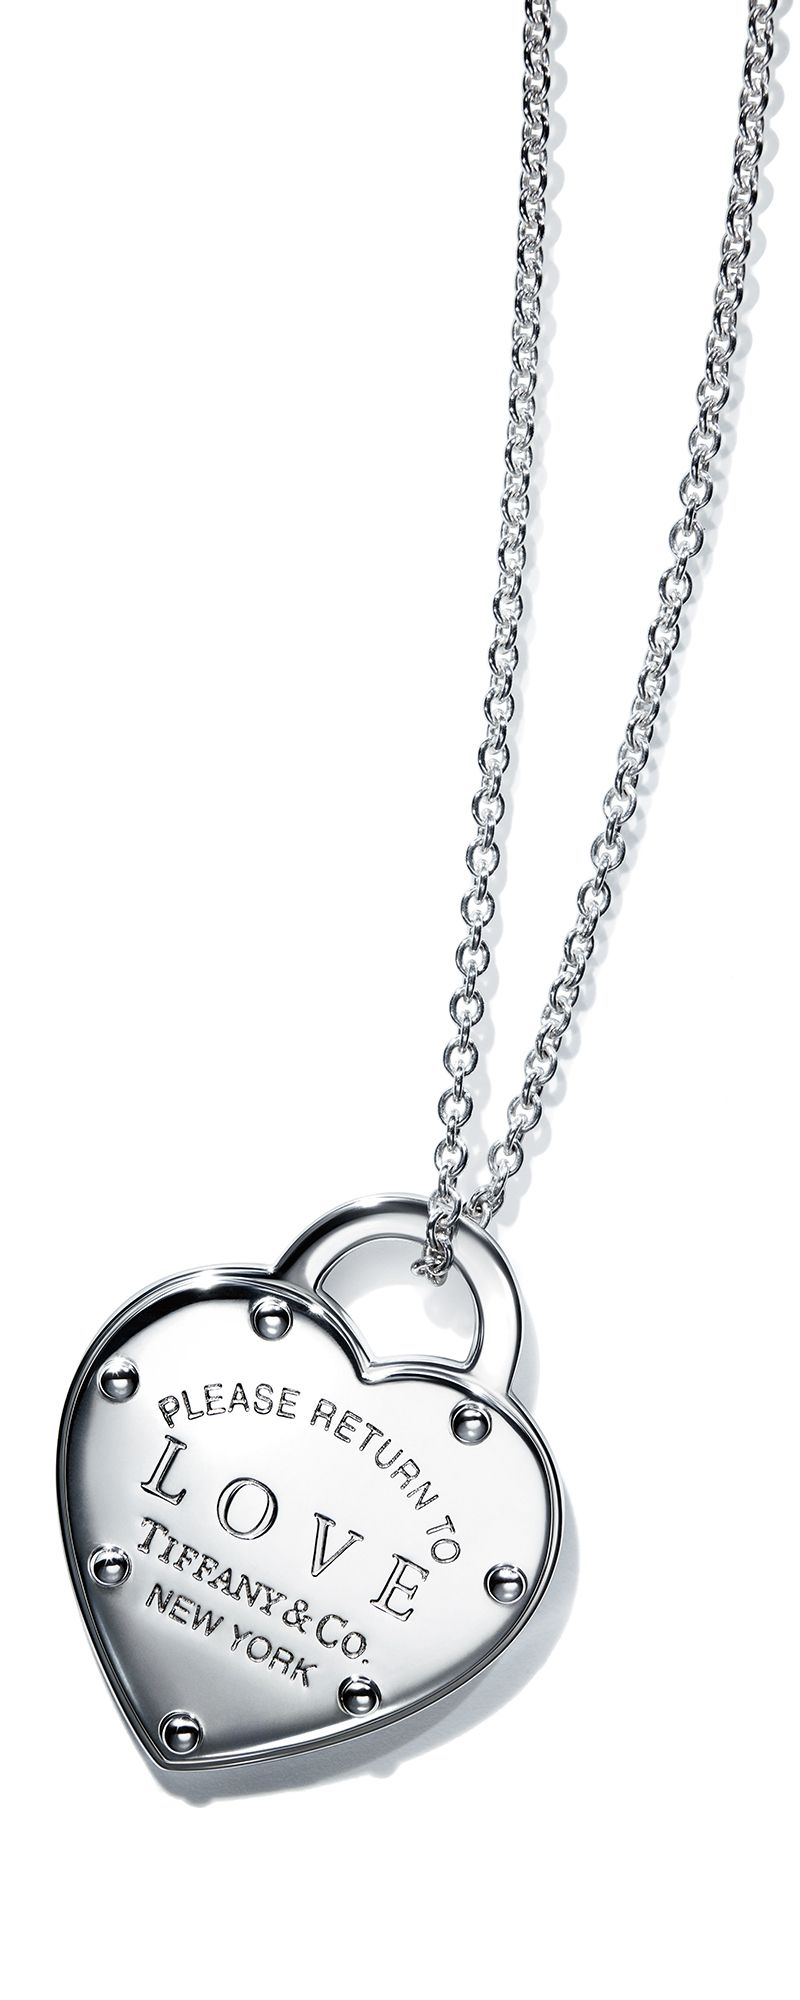 1acea849a Heart Tag Pendant | This is Tiffany | Tiffany necklace, Tiffany ...